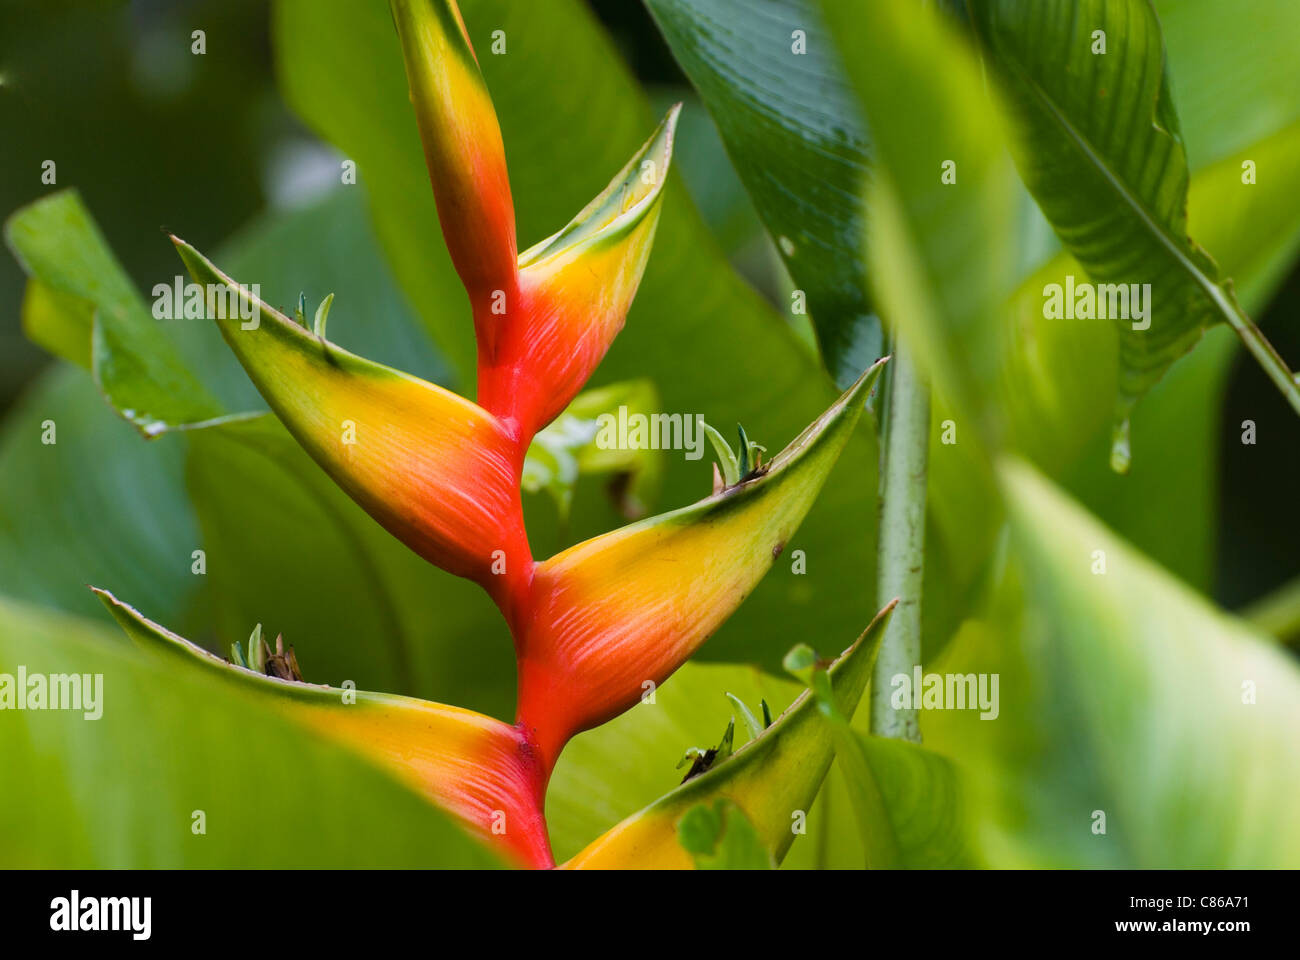 Close up of Heliconia Bihai cv Nappi red flower. Stock Photo